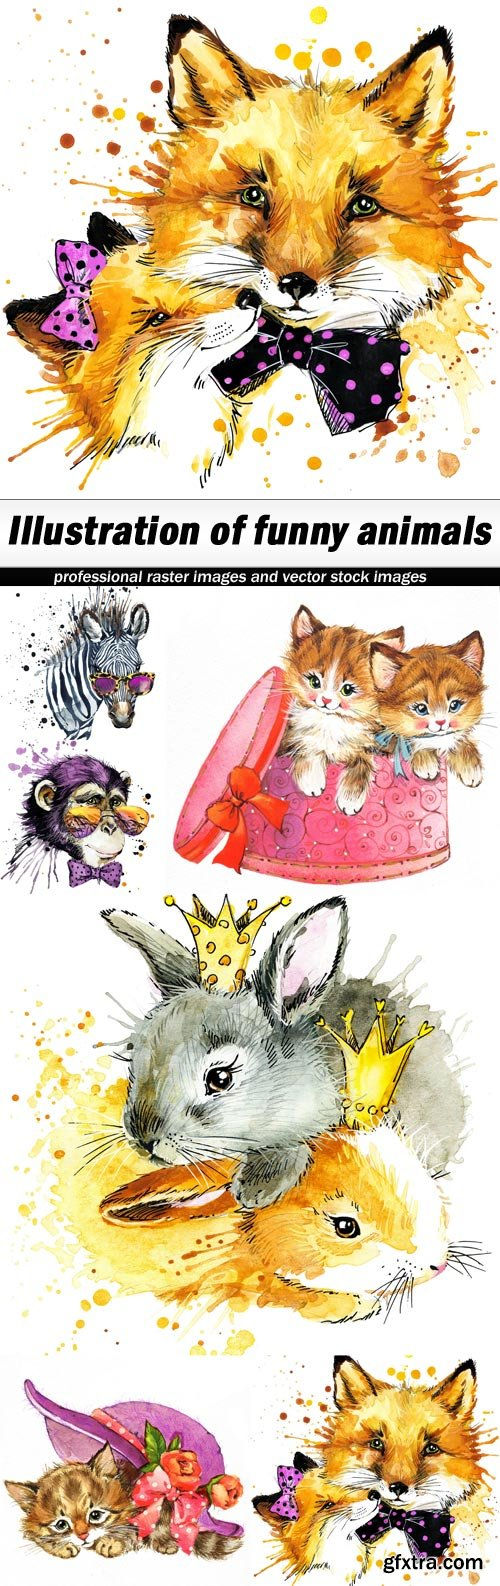 Illustration of funny animals